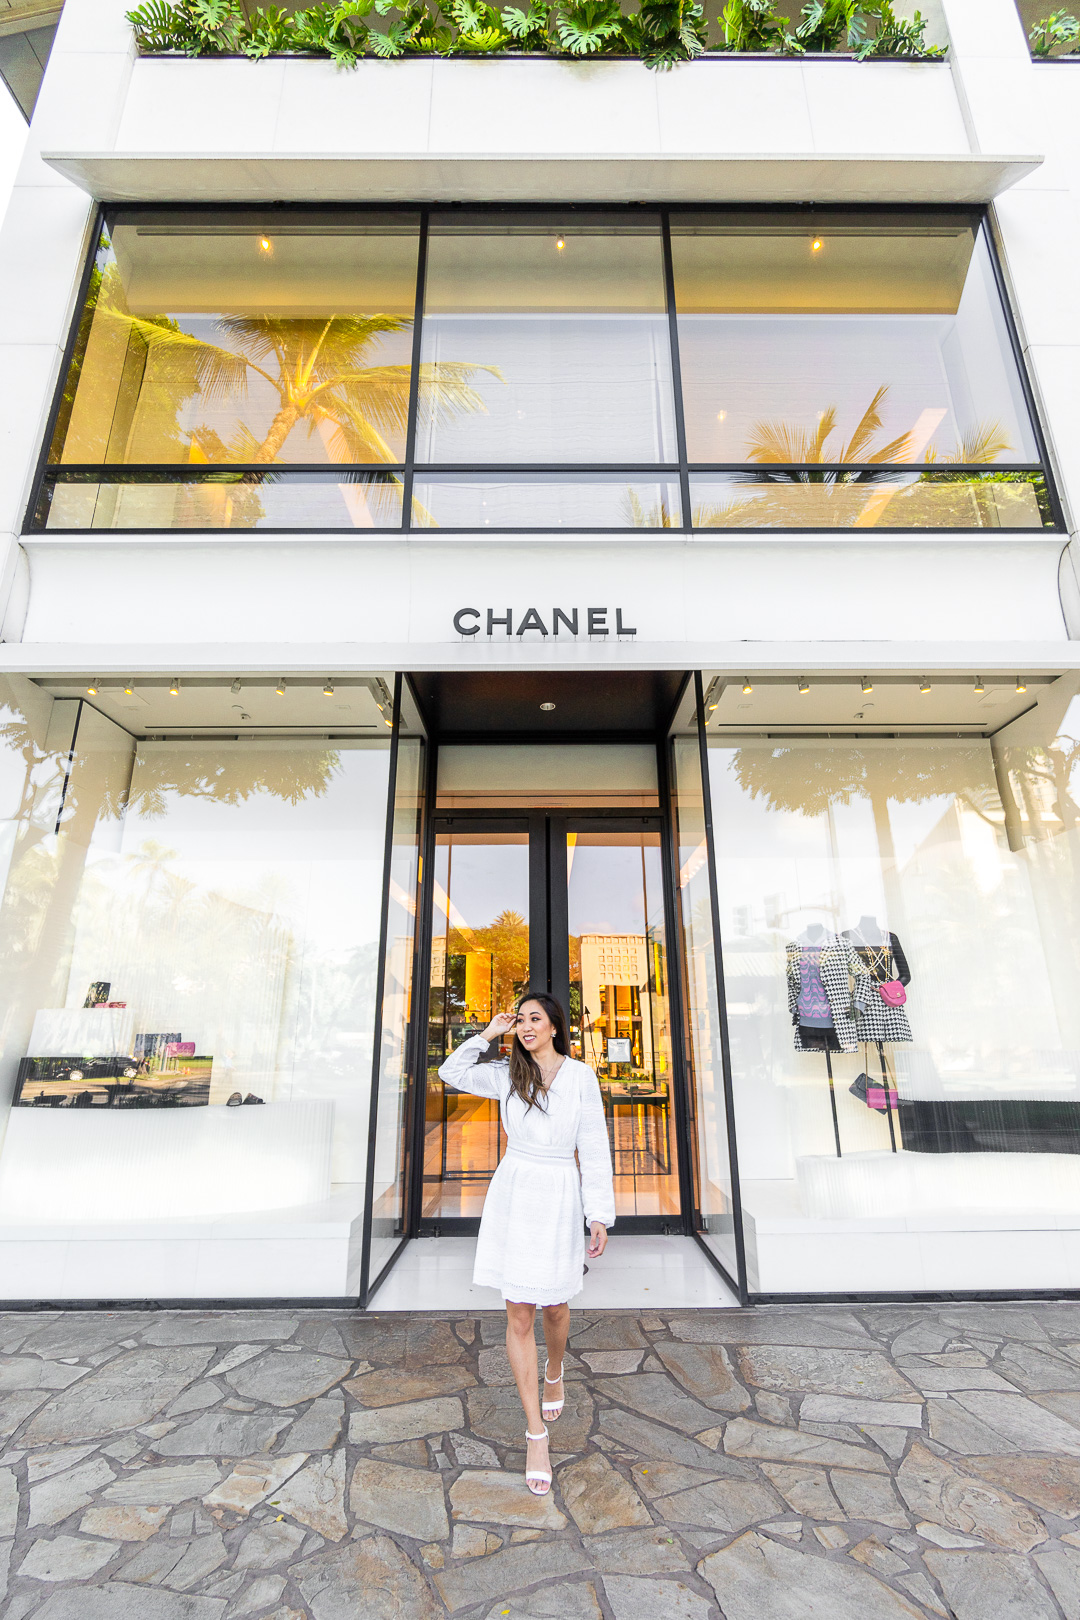 Chanel Hawaii Waikiki Store